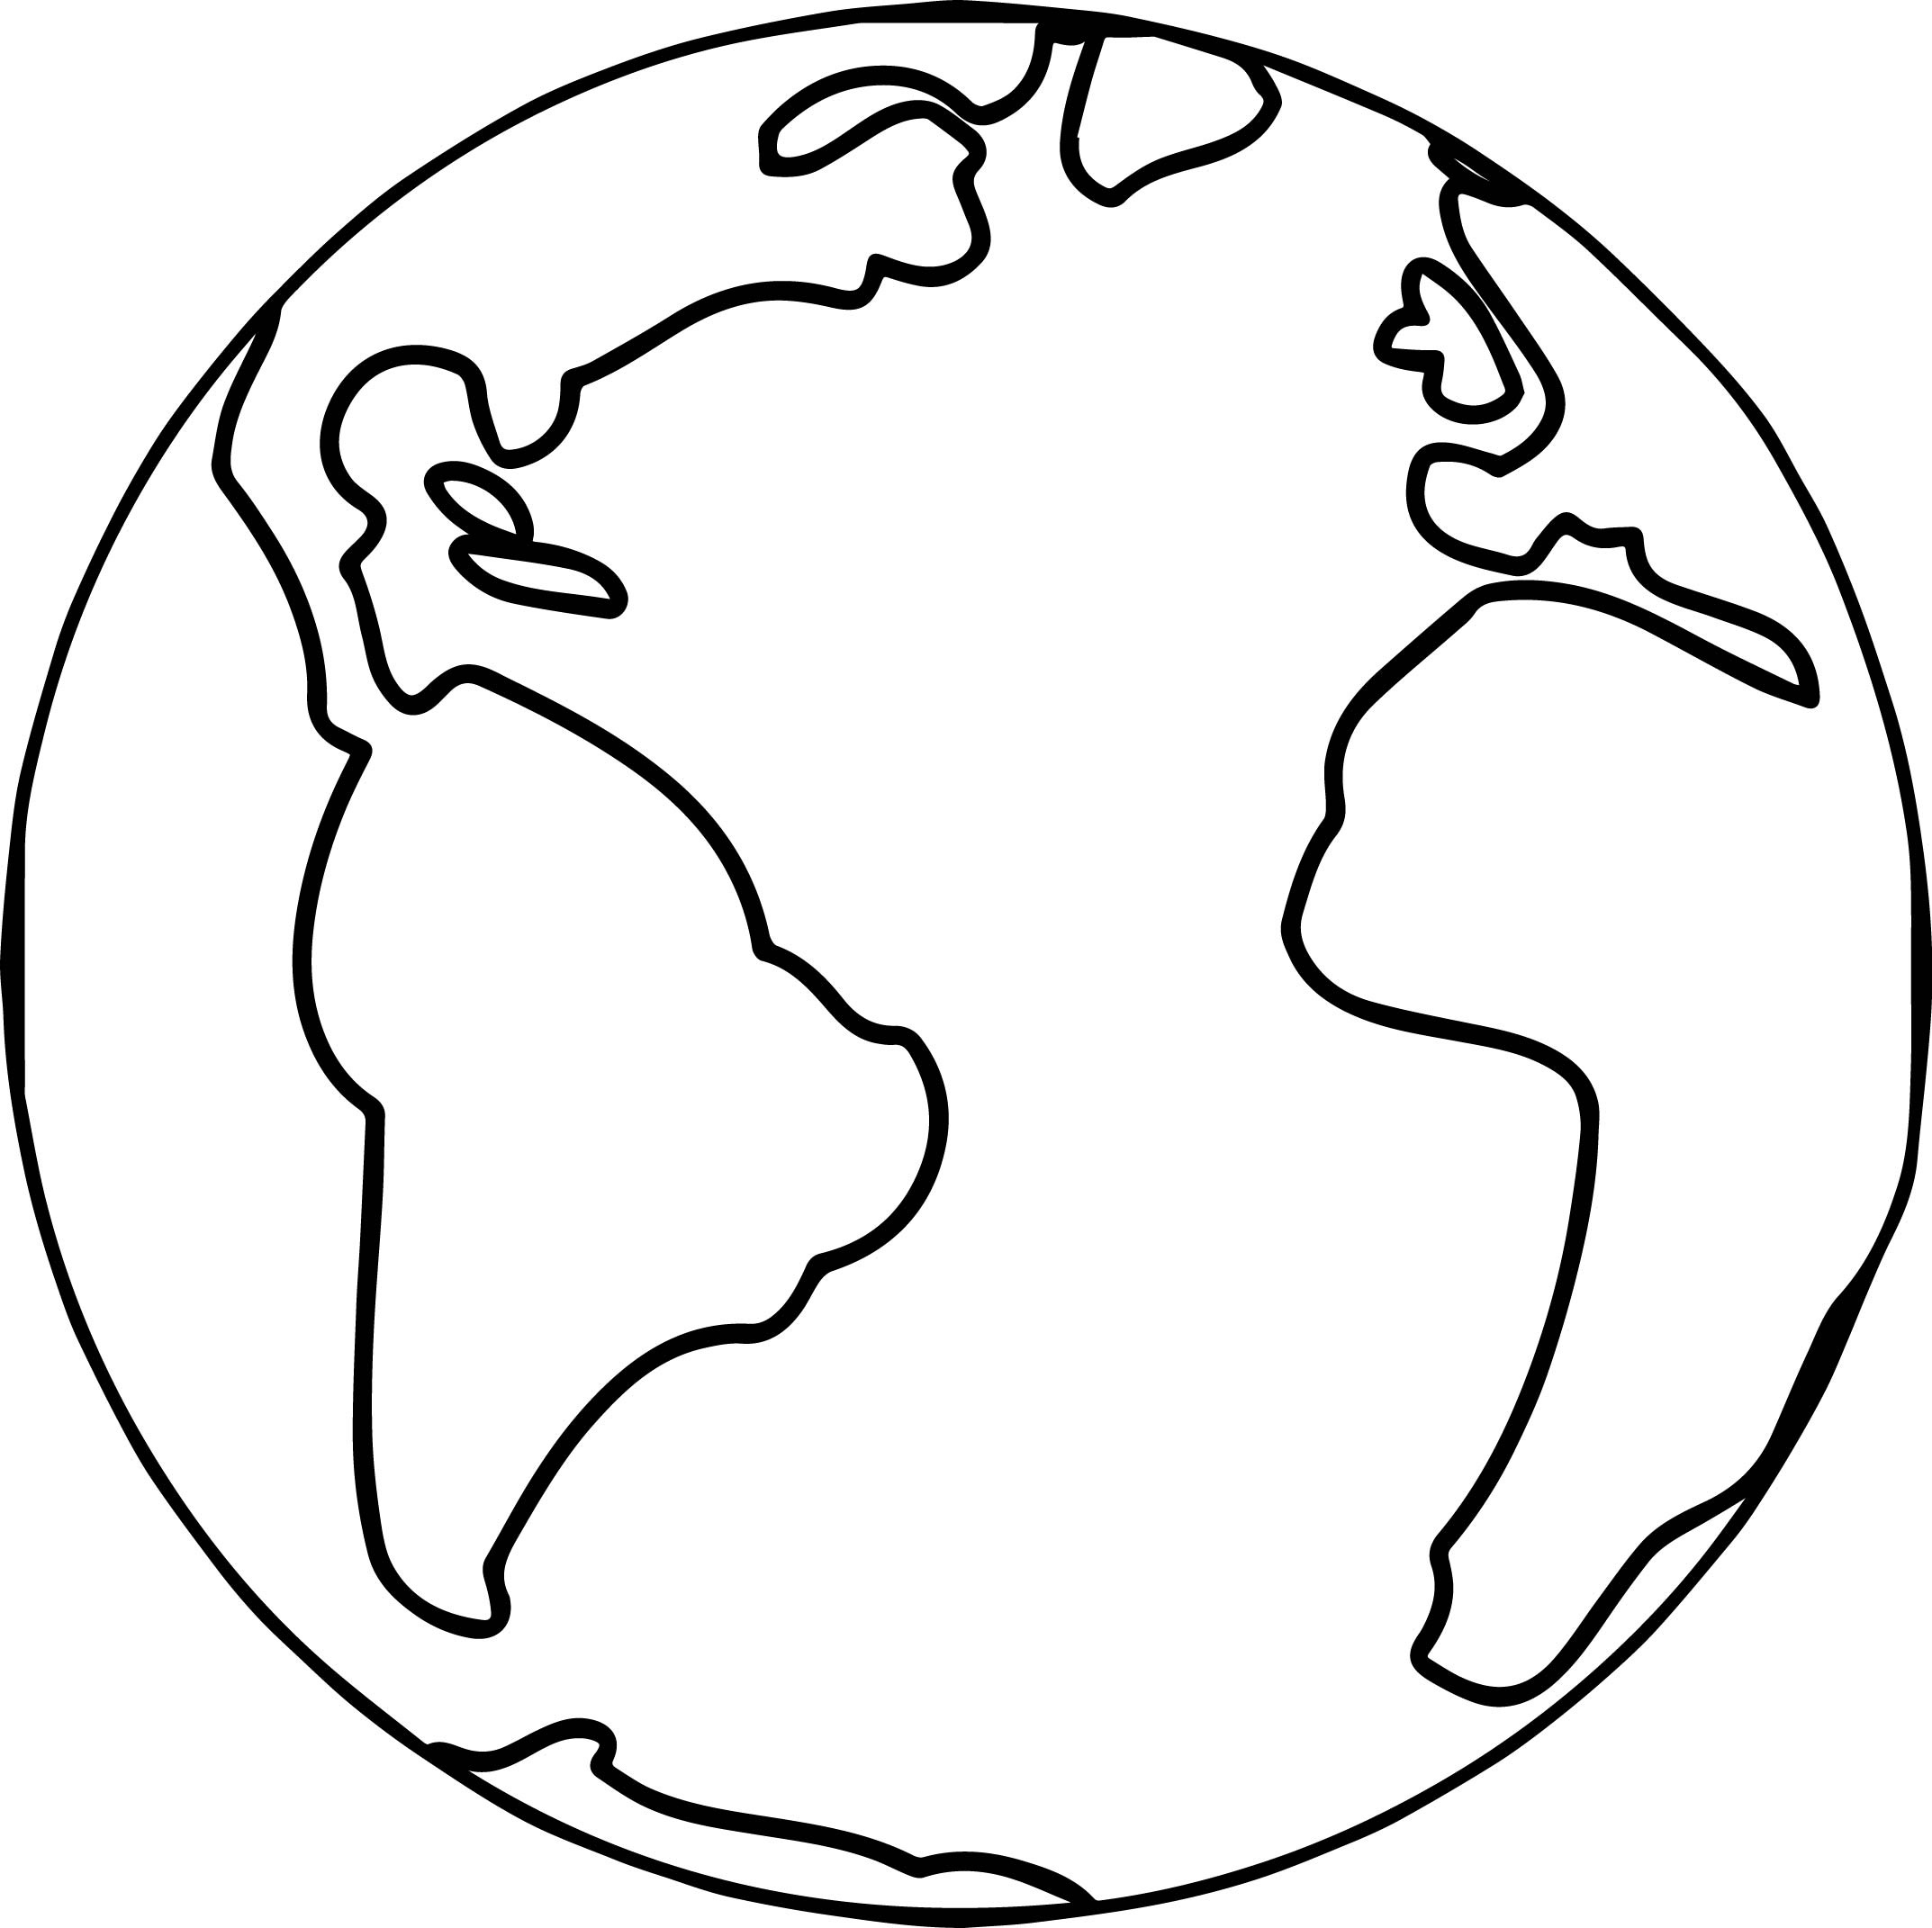 Printable Earth Coloring Pages | Free Download Best Printable Earth - Earth Coloring Pages Free Printable